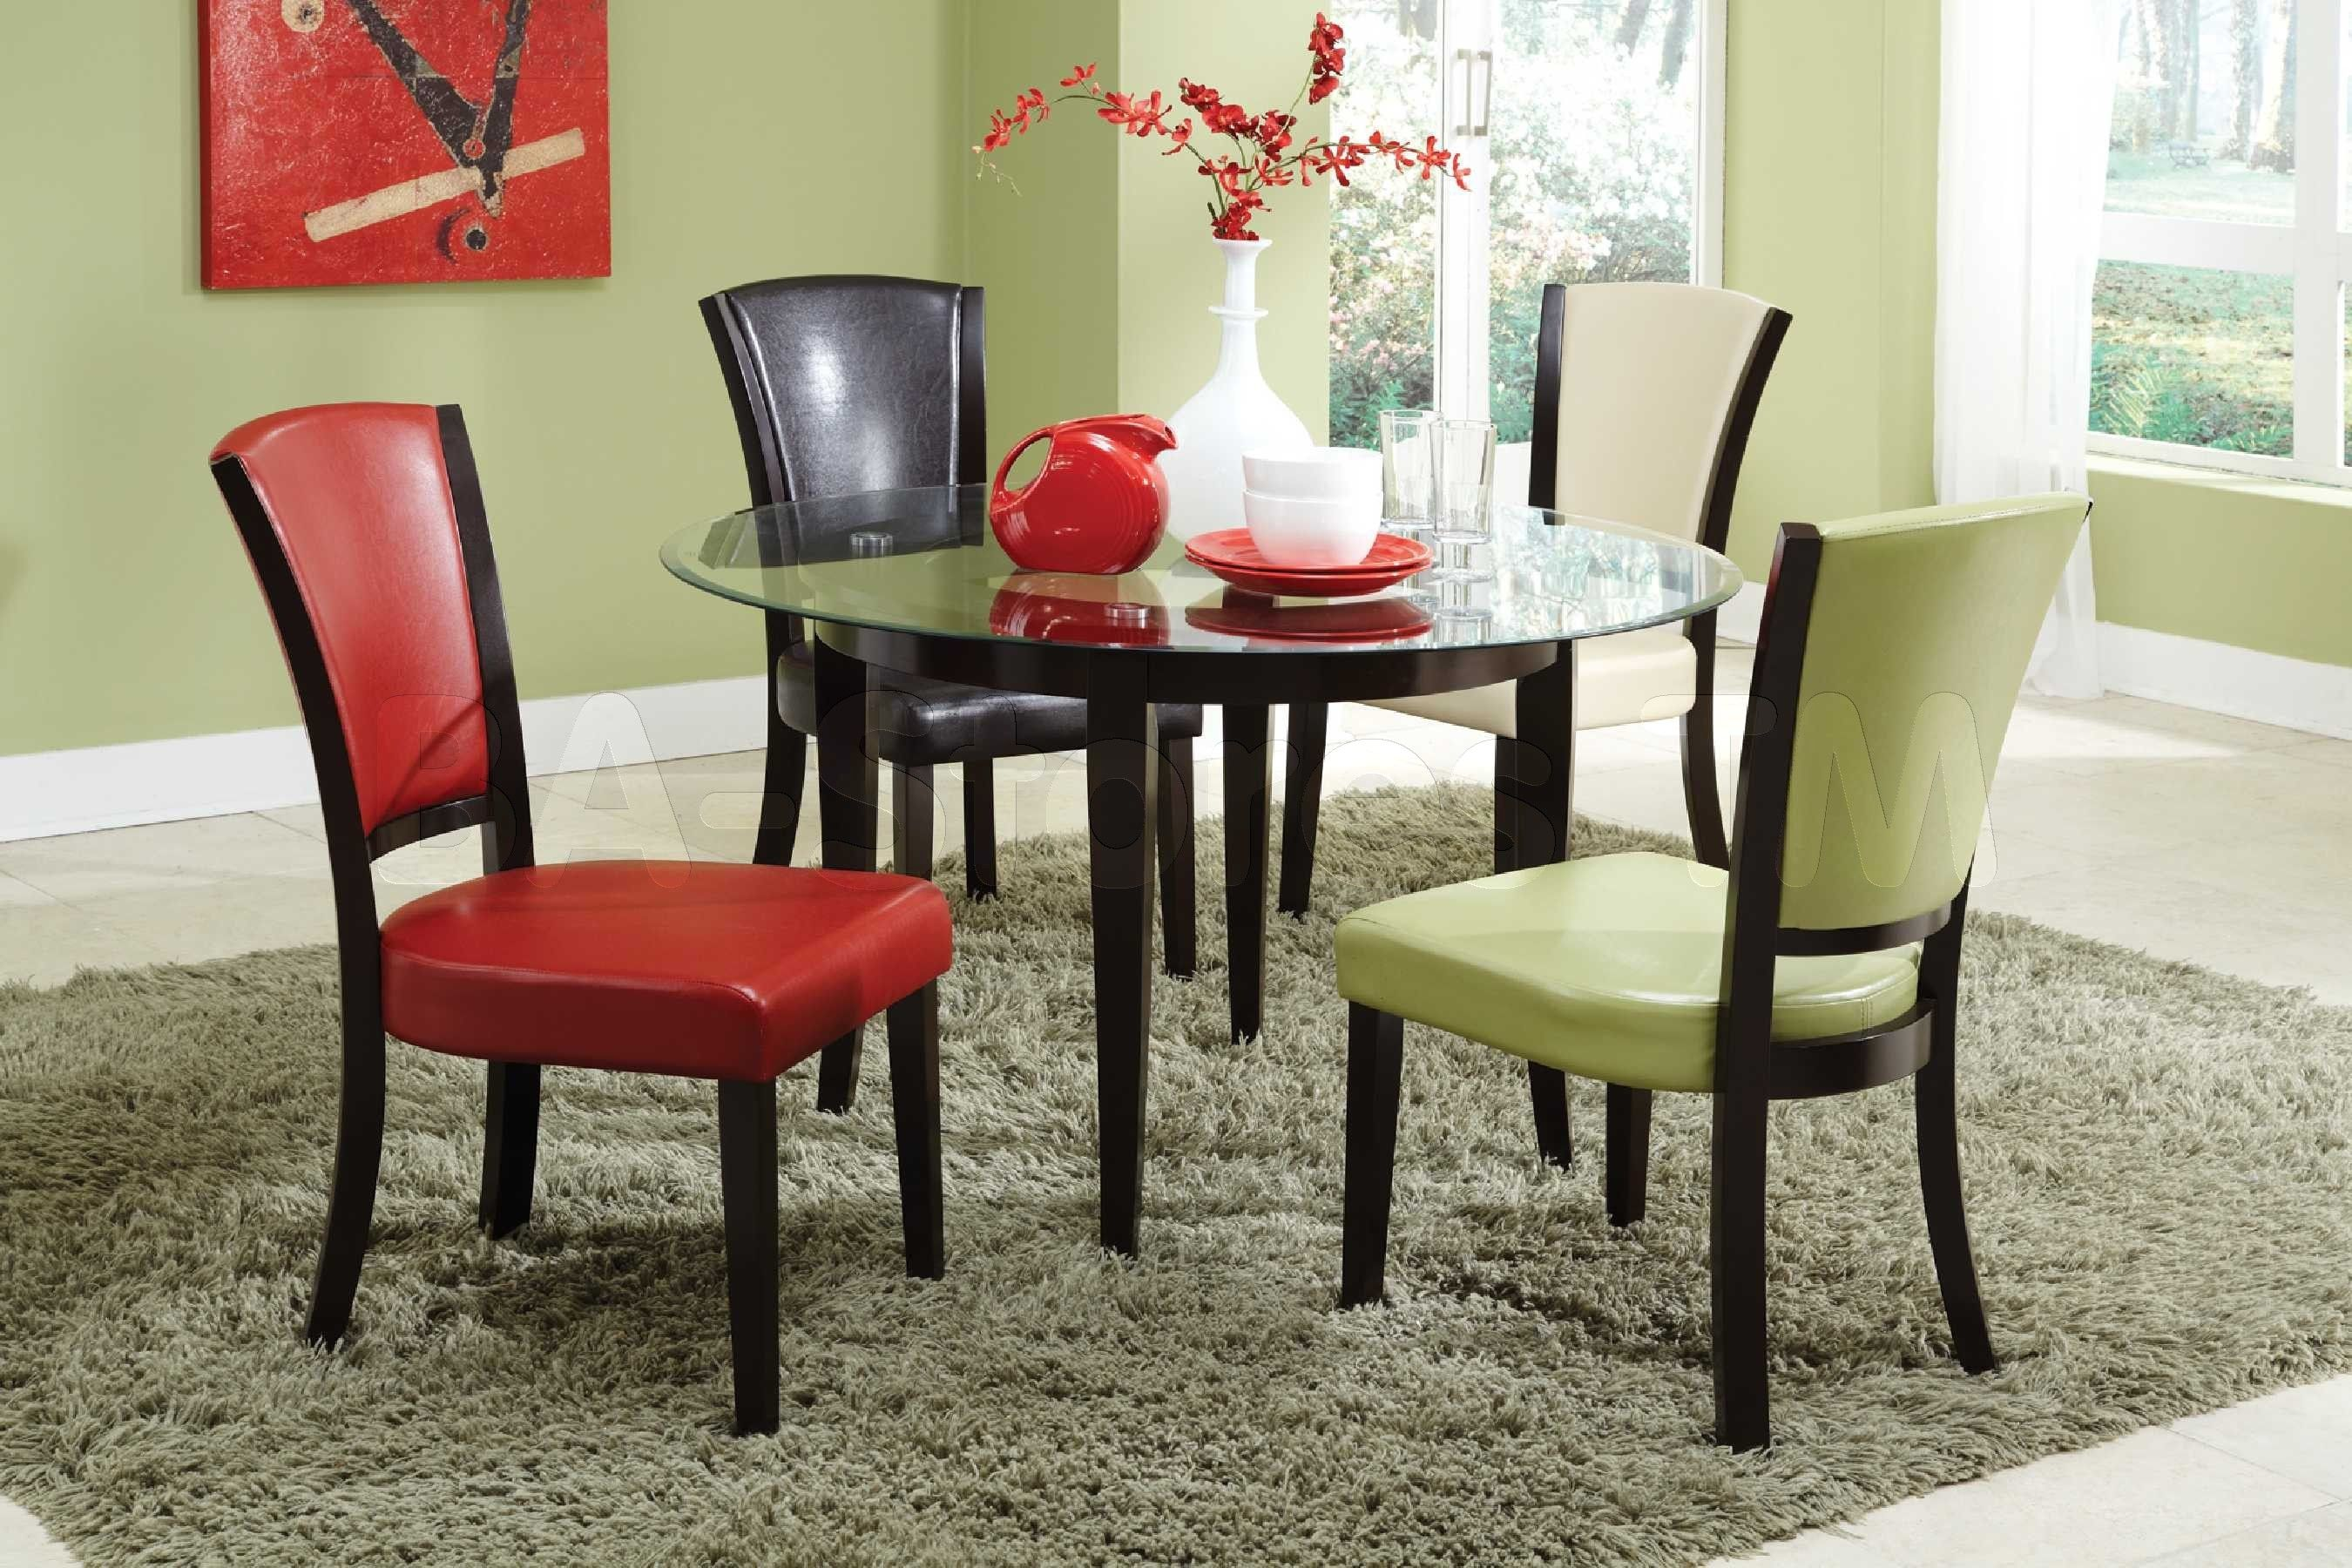 5 PC Dining Set (Four Vinyl Chairs And Glass Table)